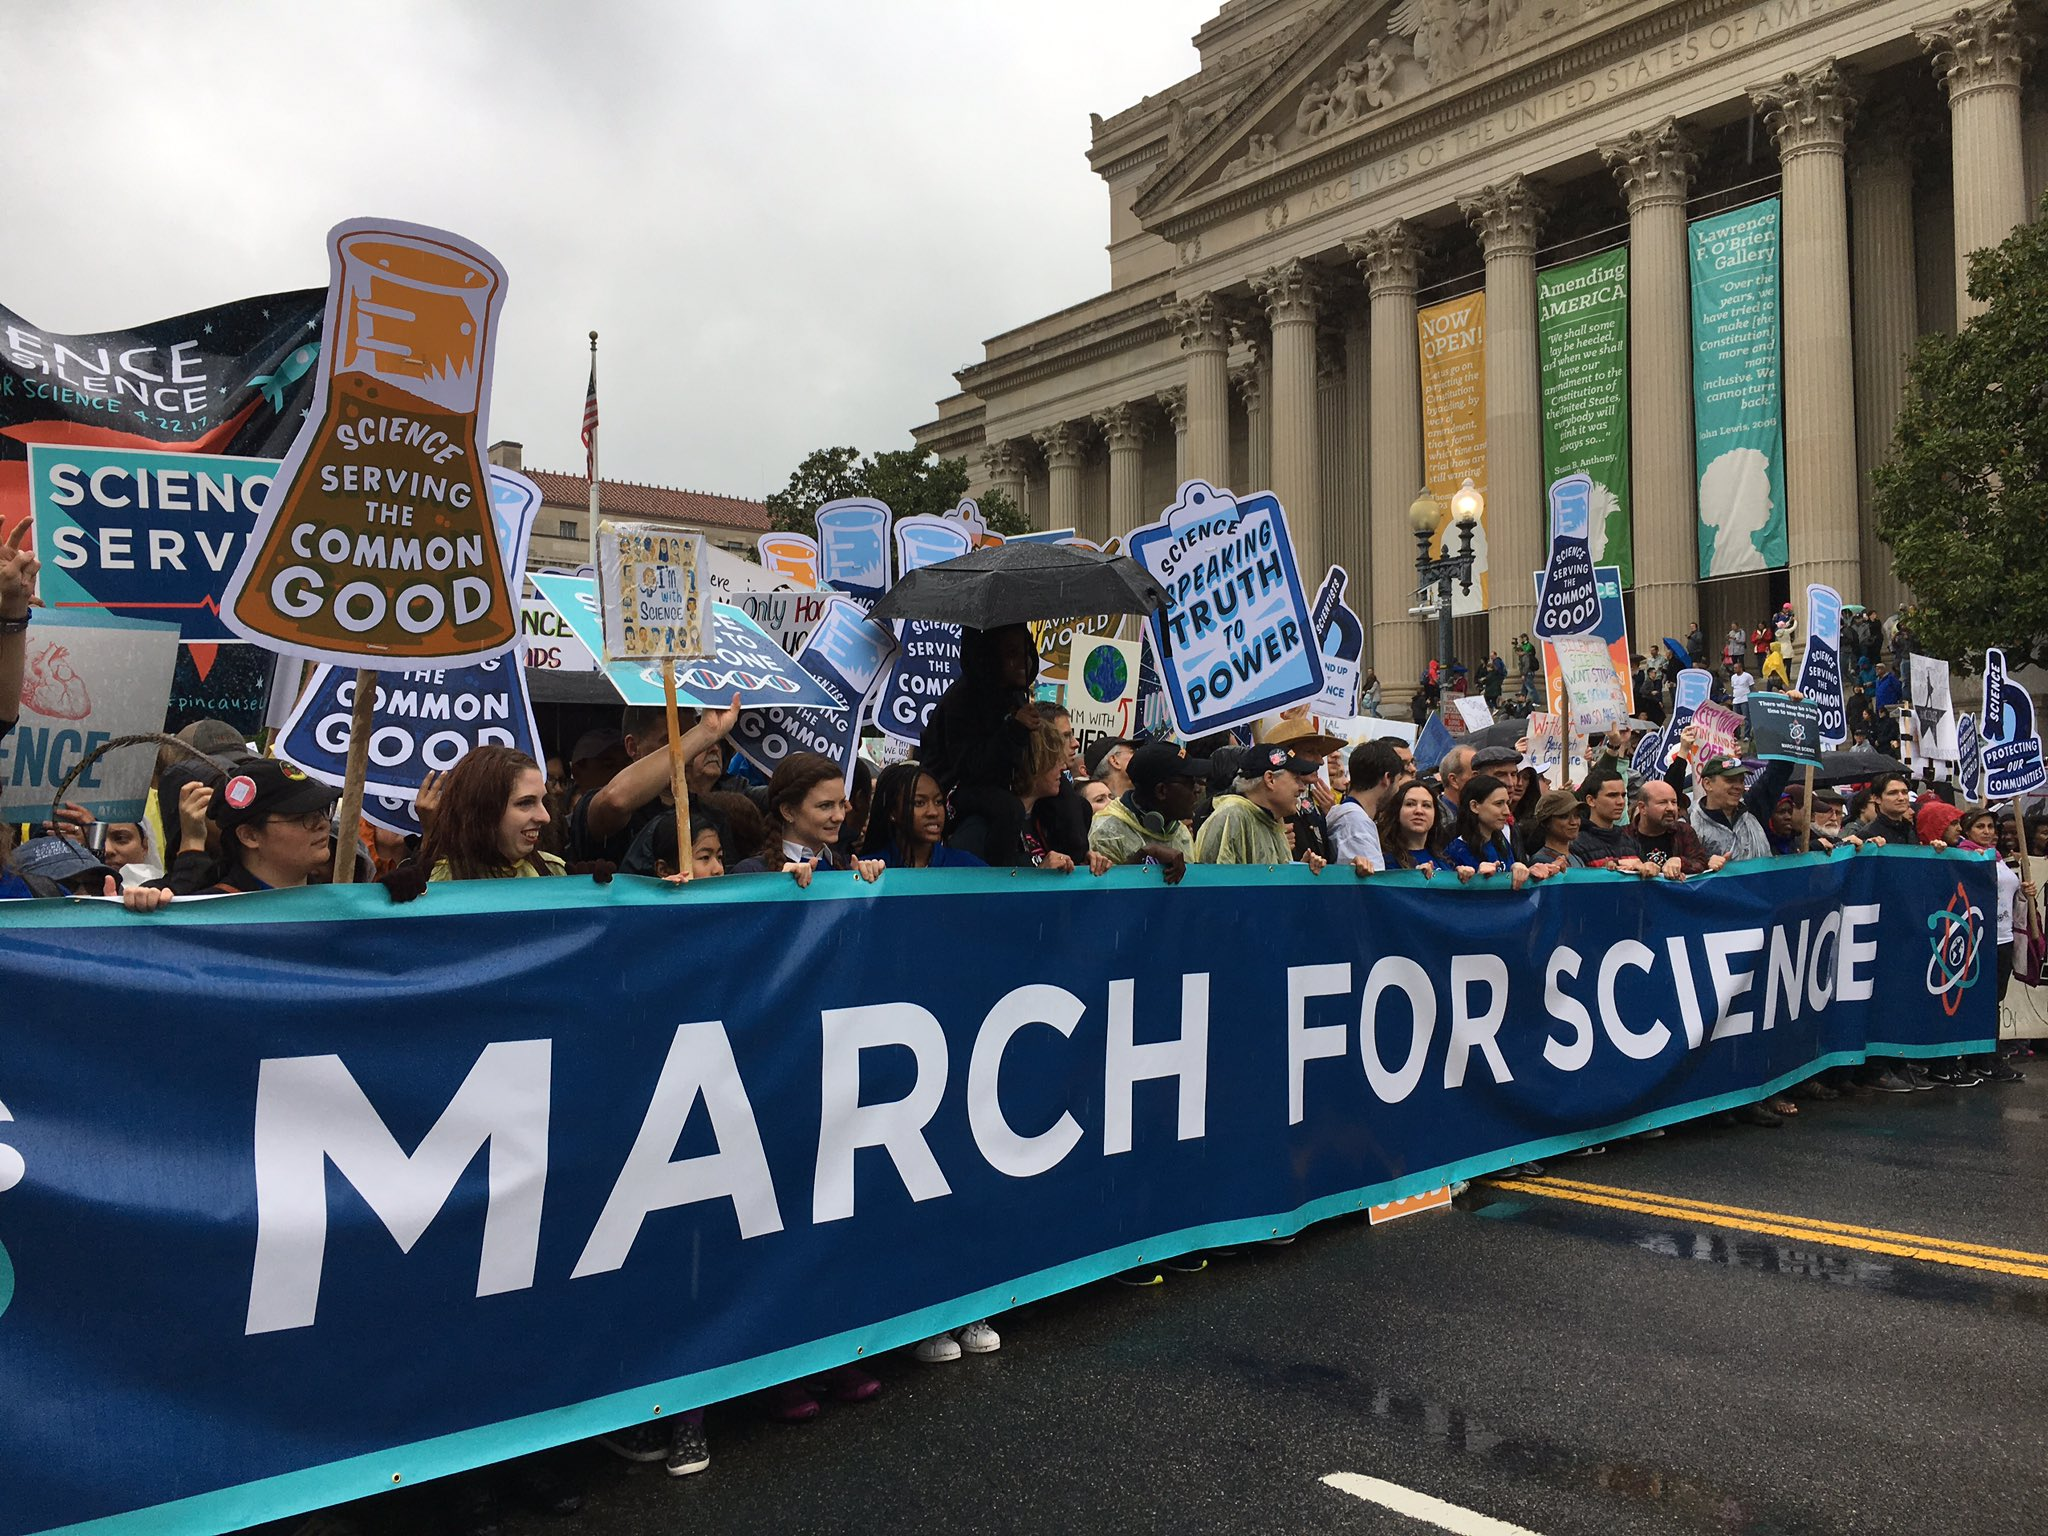 Dr Mann And Bill Nye Washington Dc Science March Photo 8 April 22